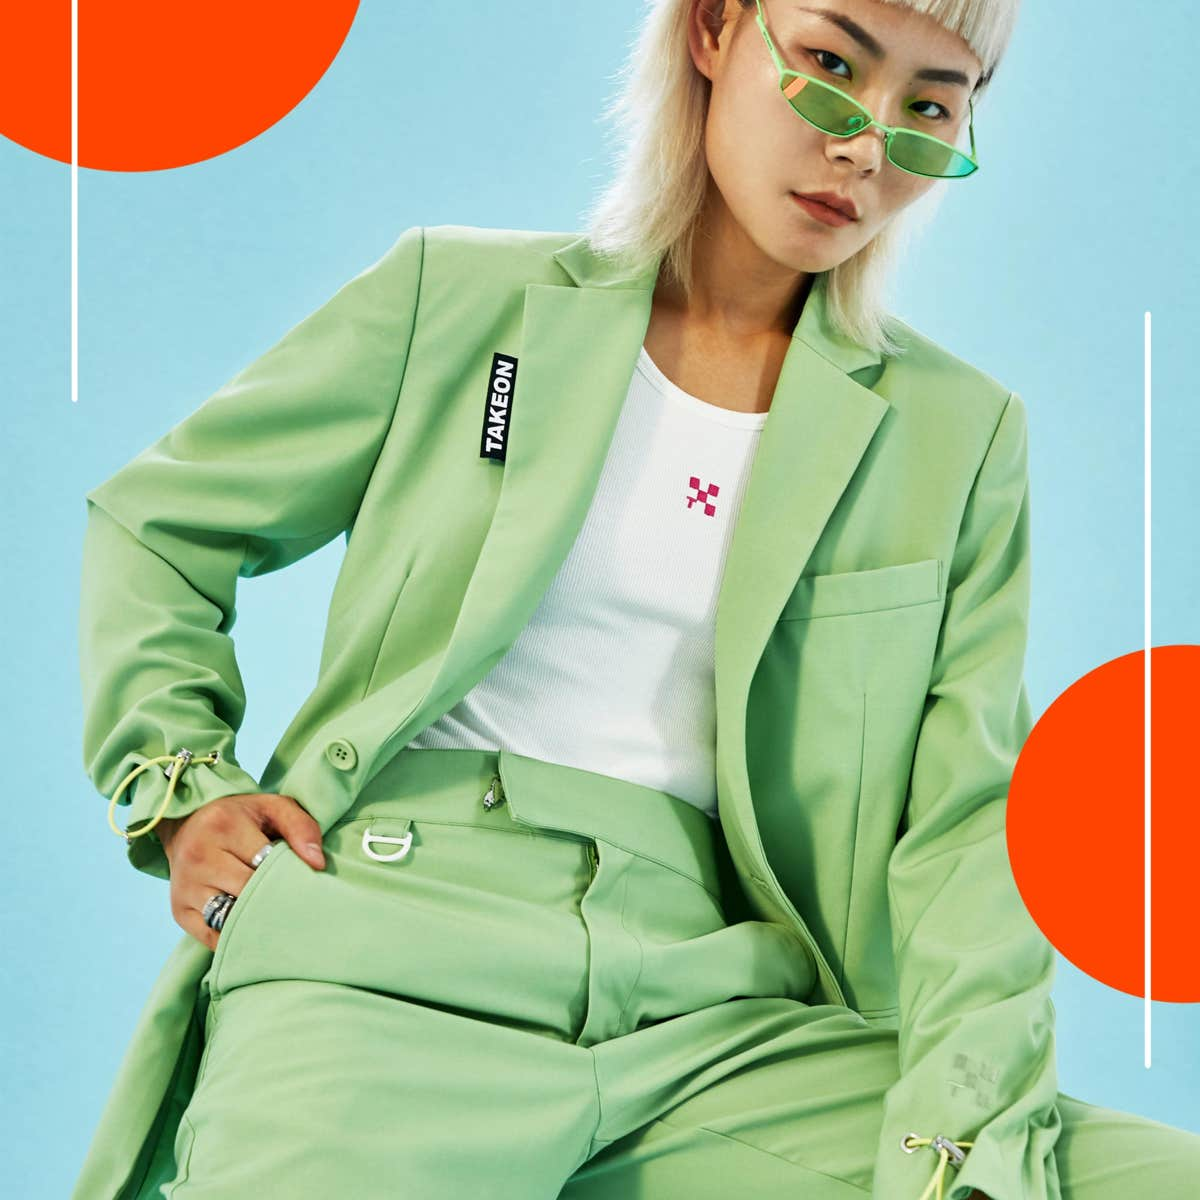 Female Streetwear Designers Are On The Rise In 2020